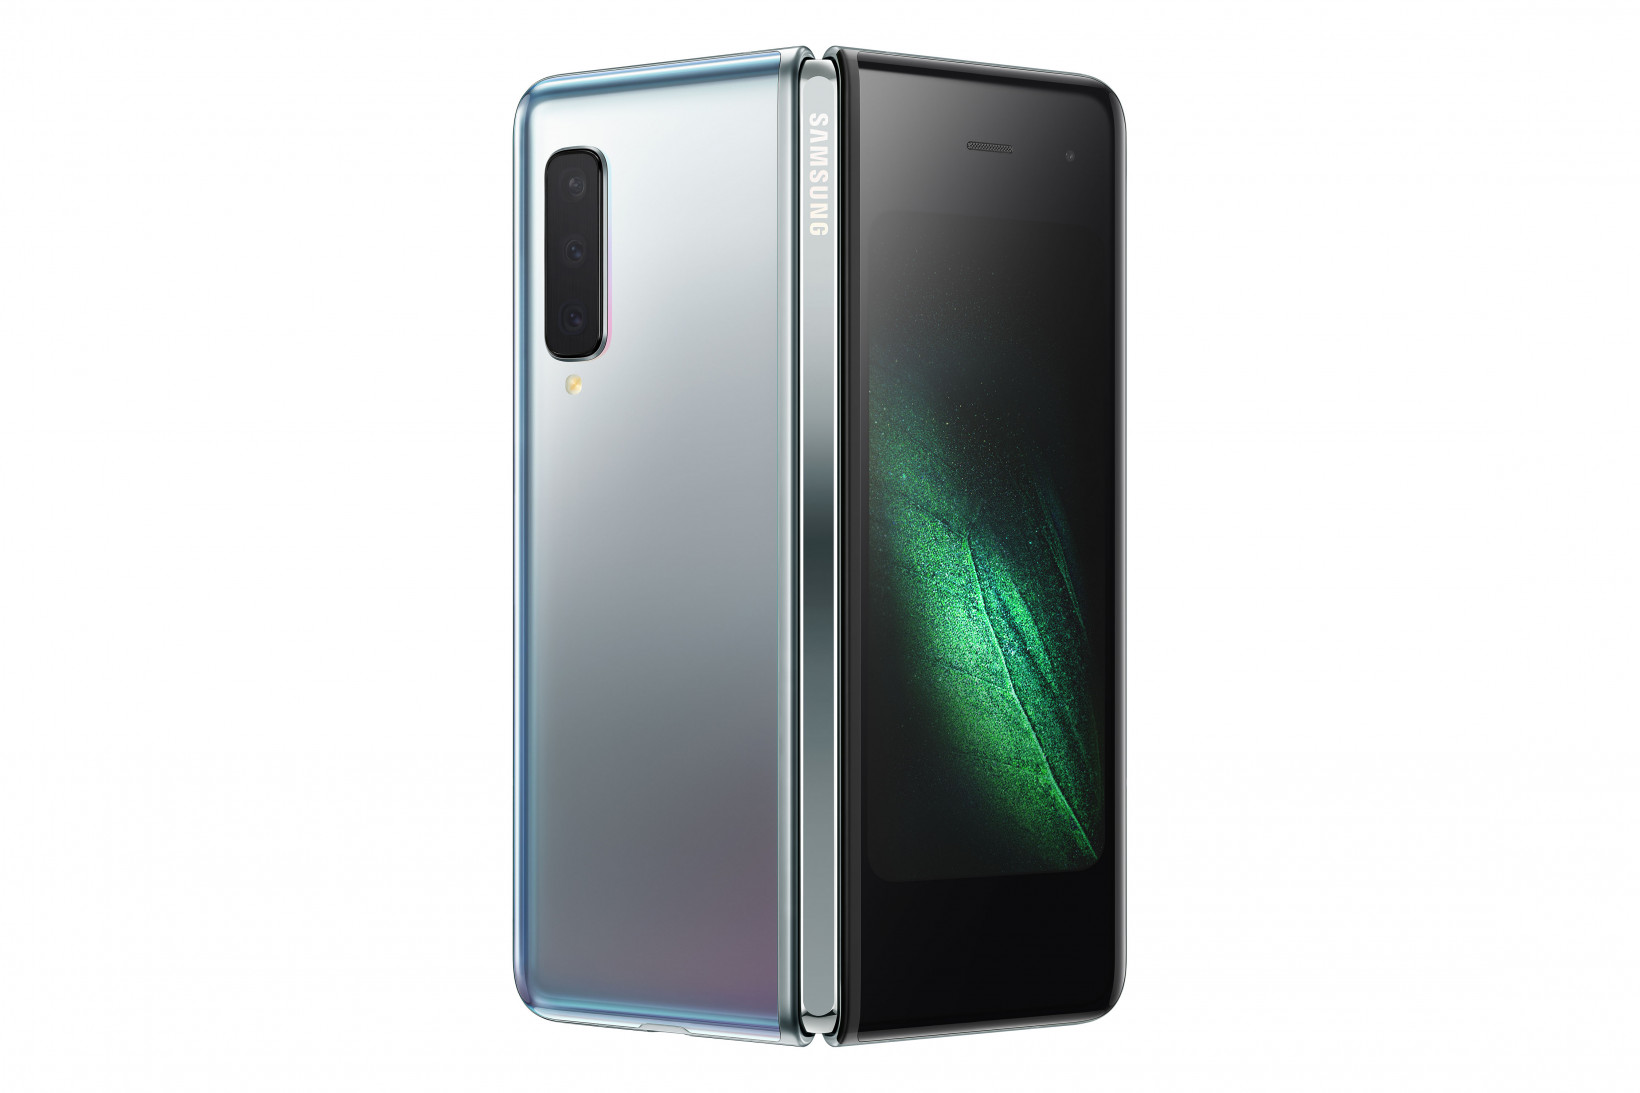 The Galaxy Fold certainly won't be the slimmest device you've owned